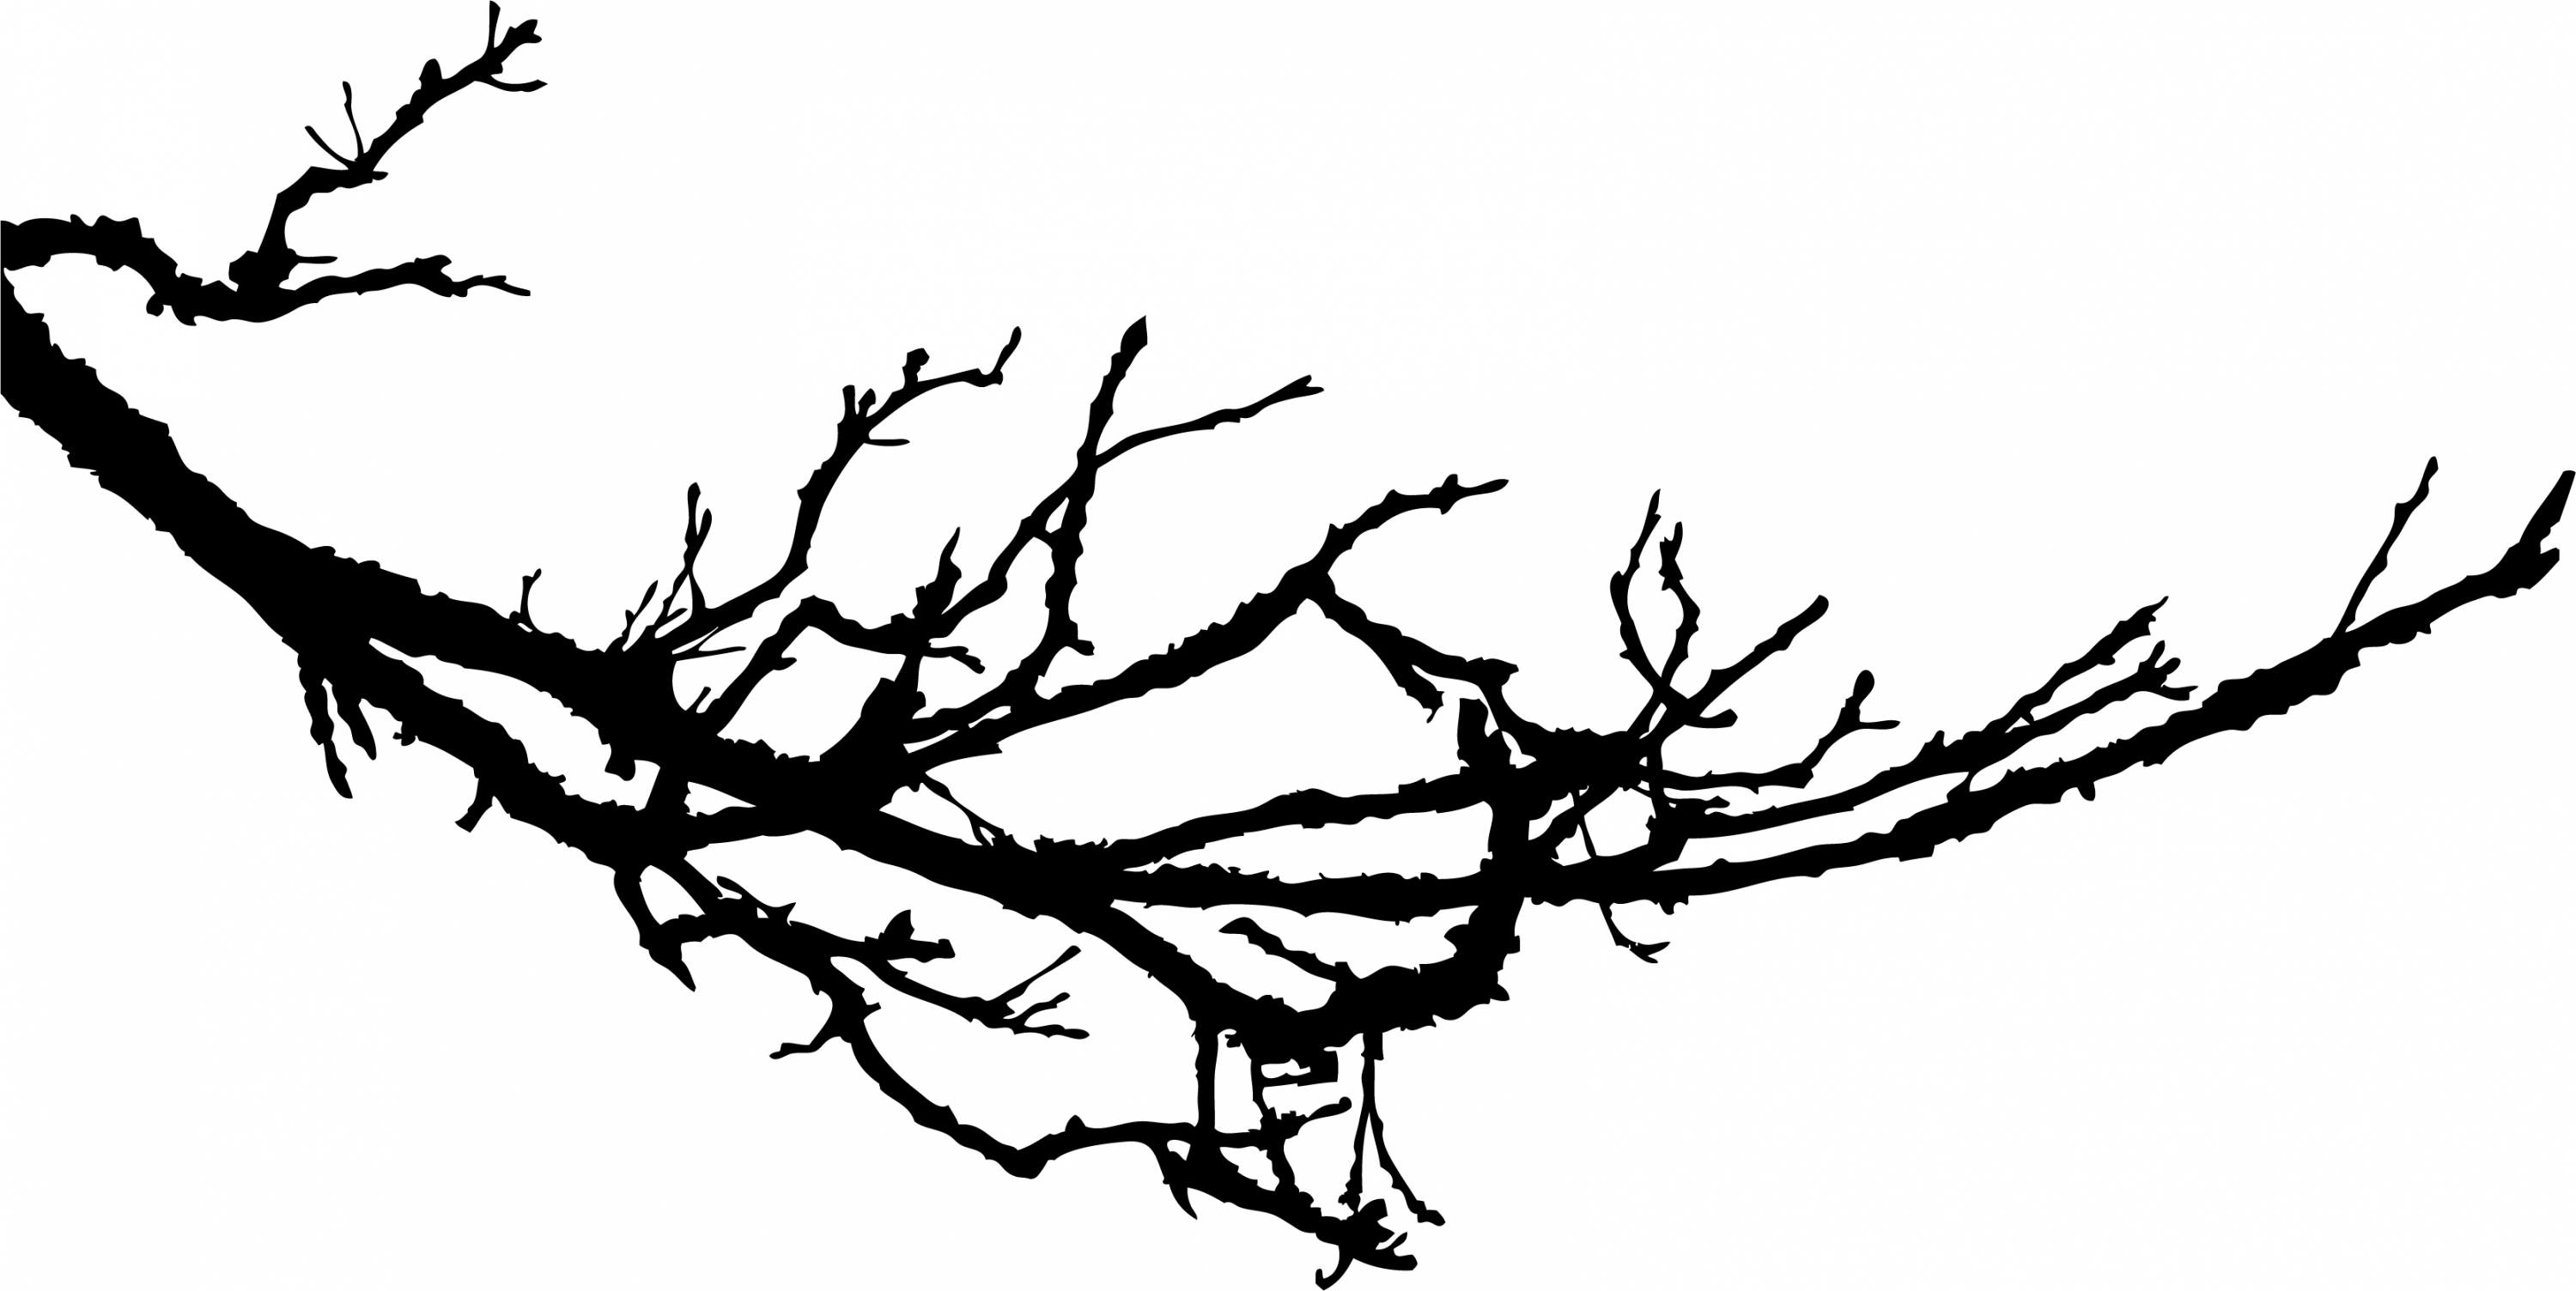 Clip art tree branches black and white